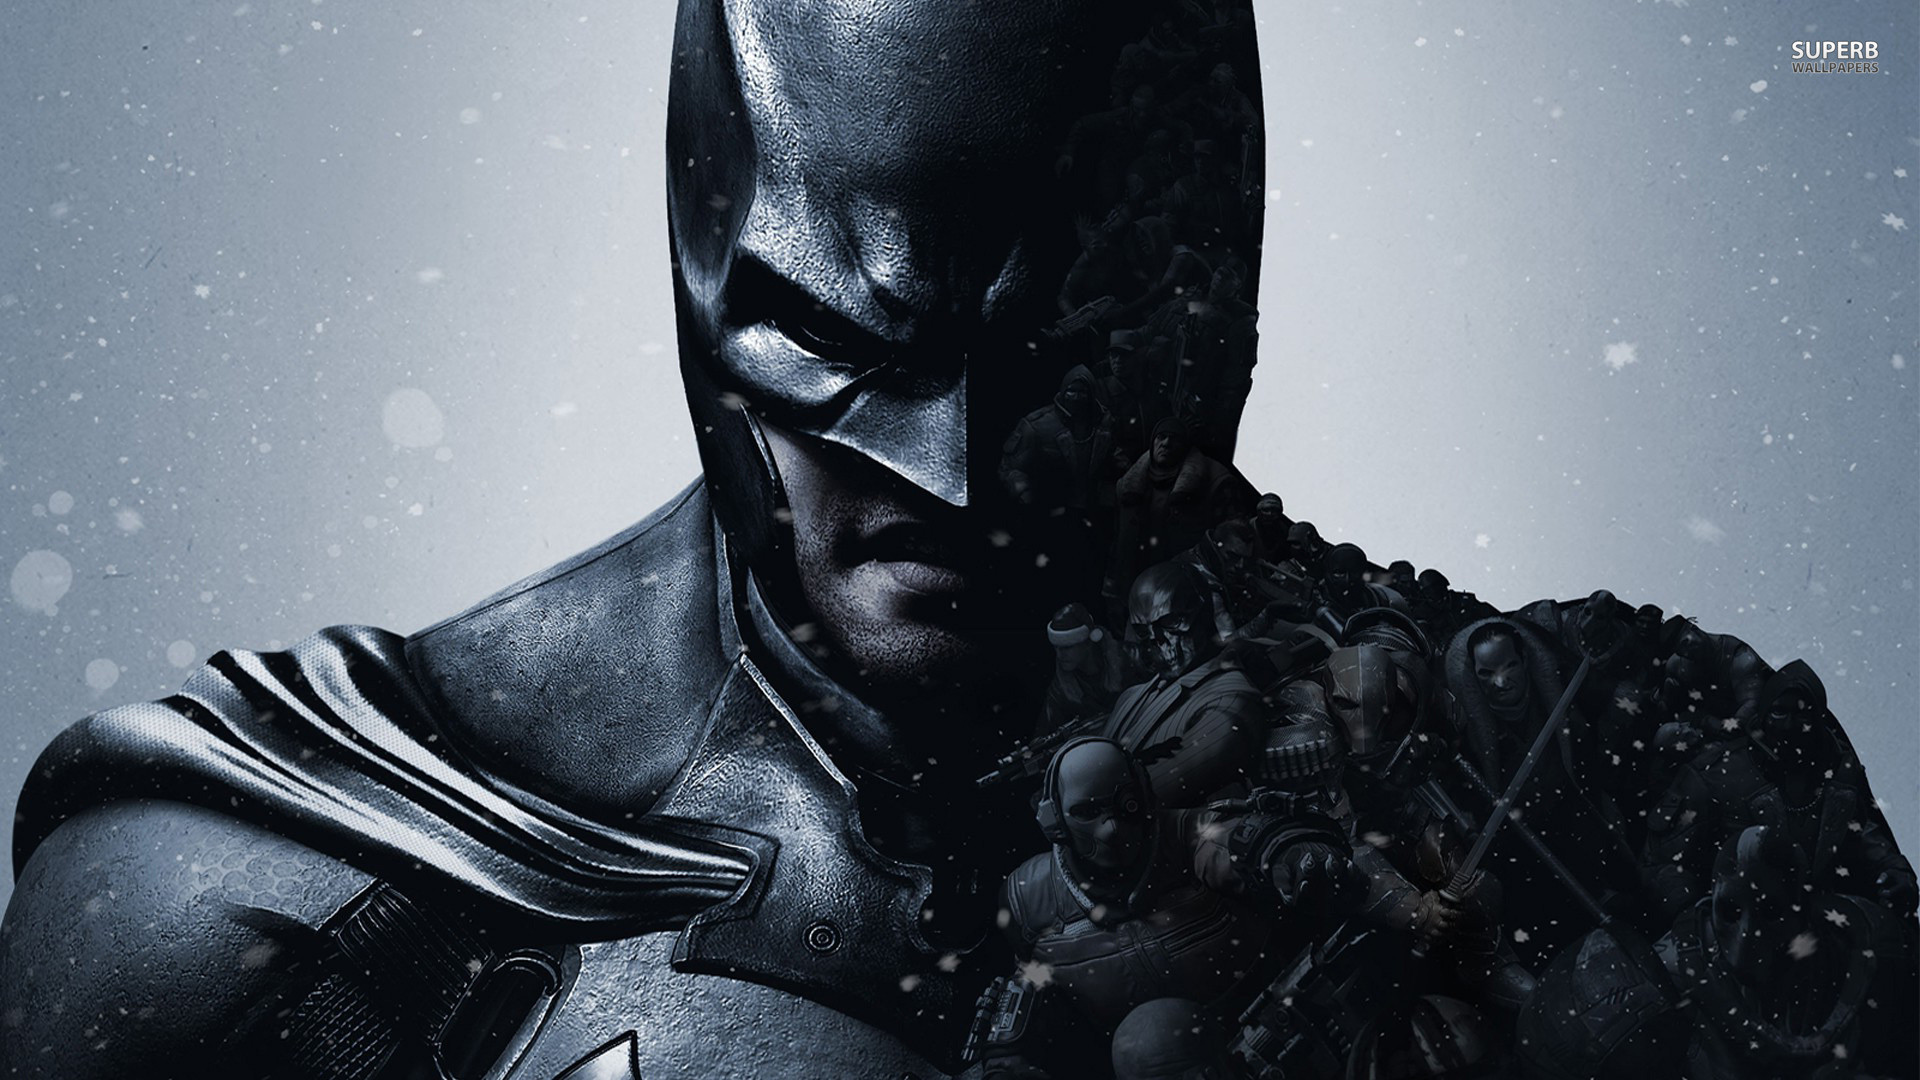 1920x1080 Batman Arkham Origins